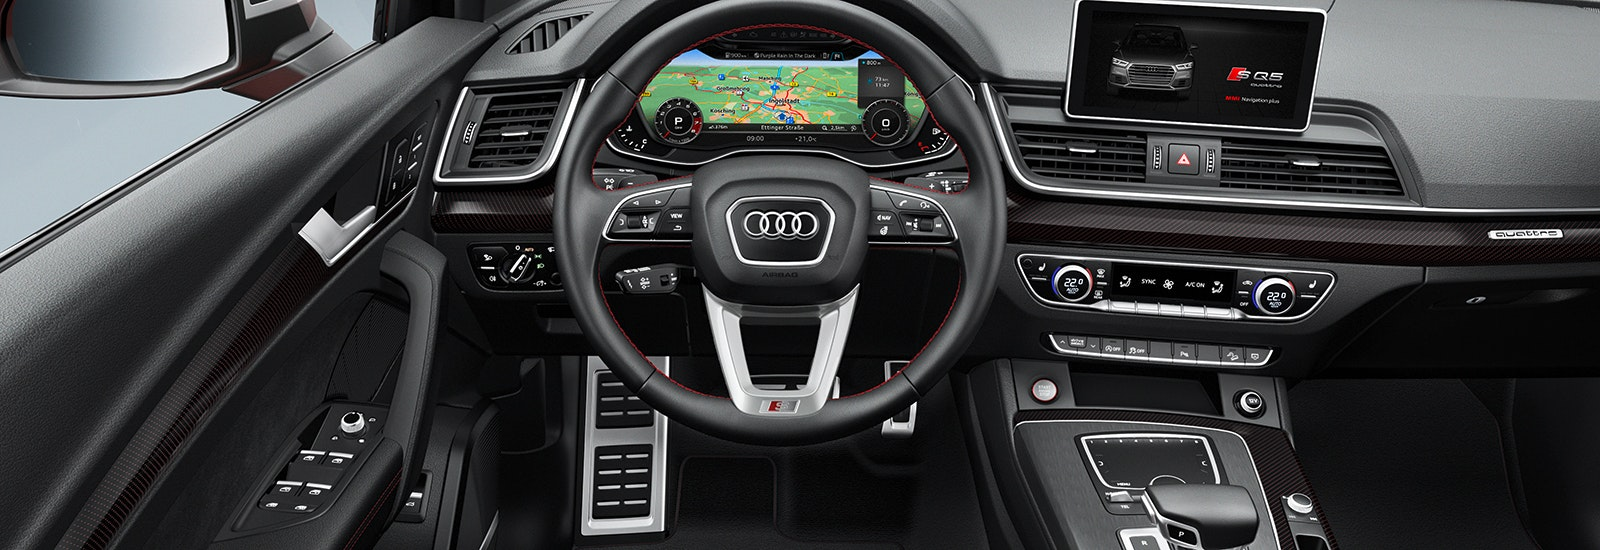 2018 Audi RS Q5 price, specs and release date | carwow